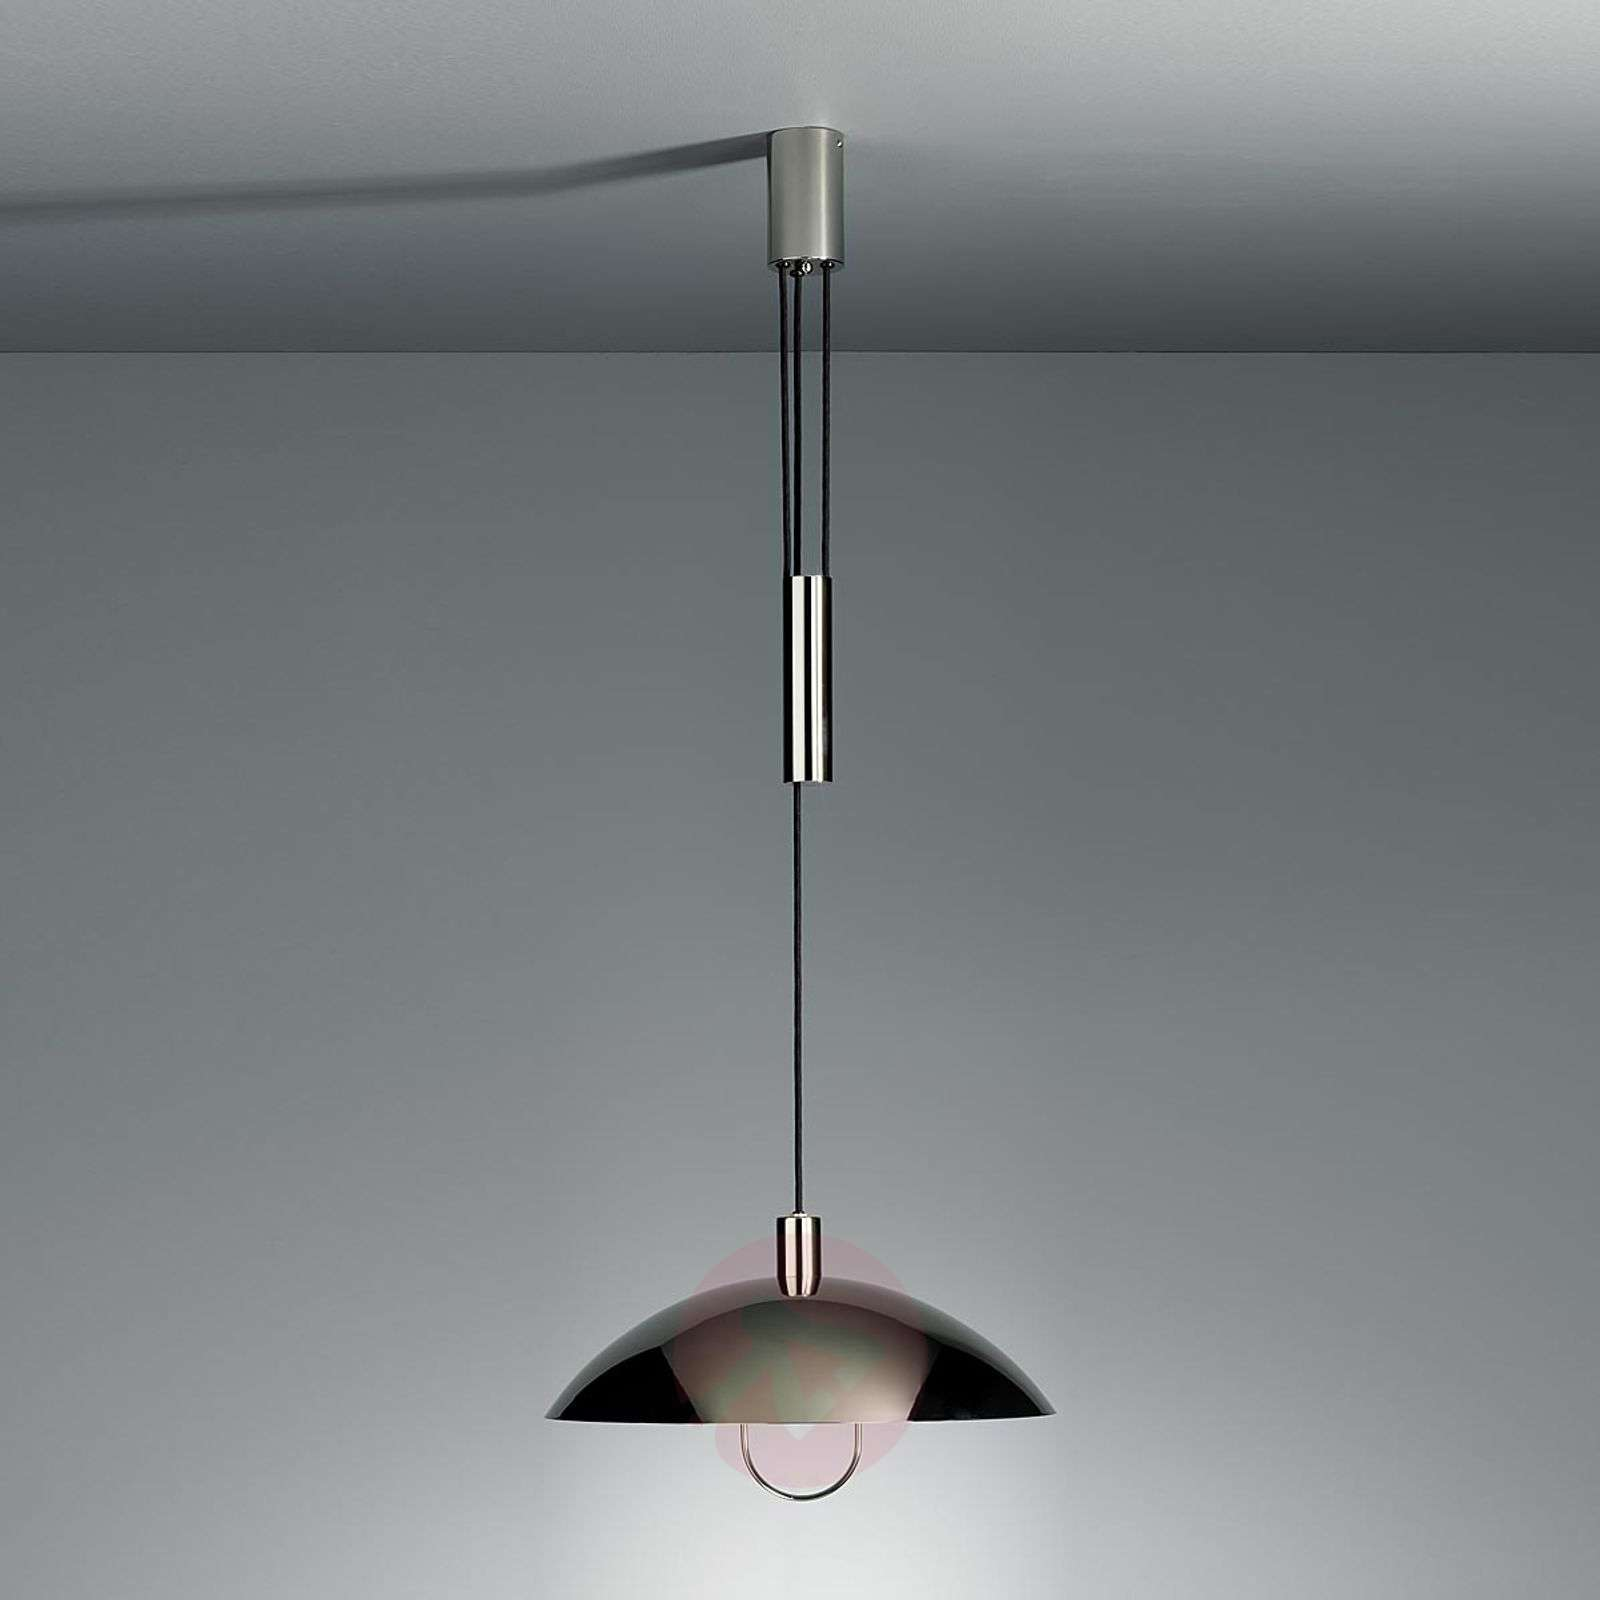 Bauhaus hanging light-9030121X-01